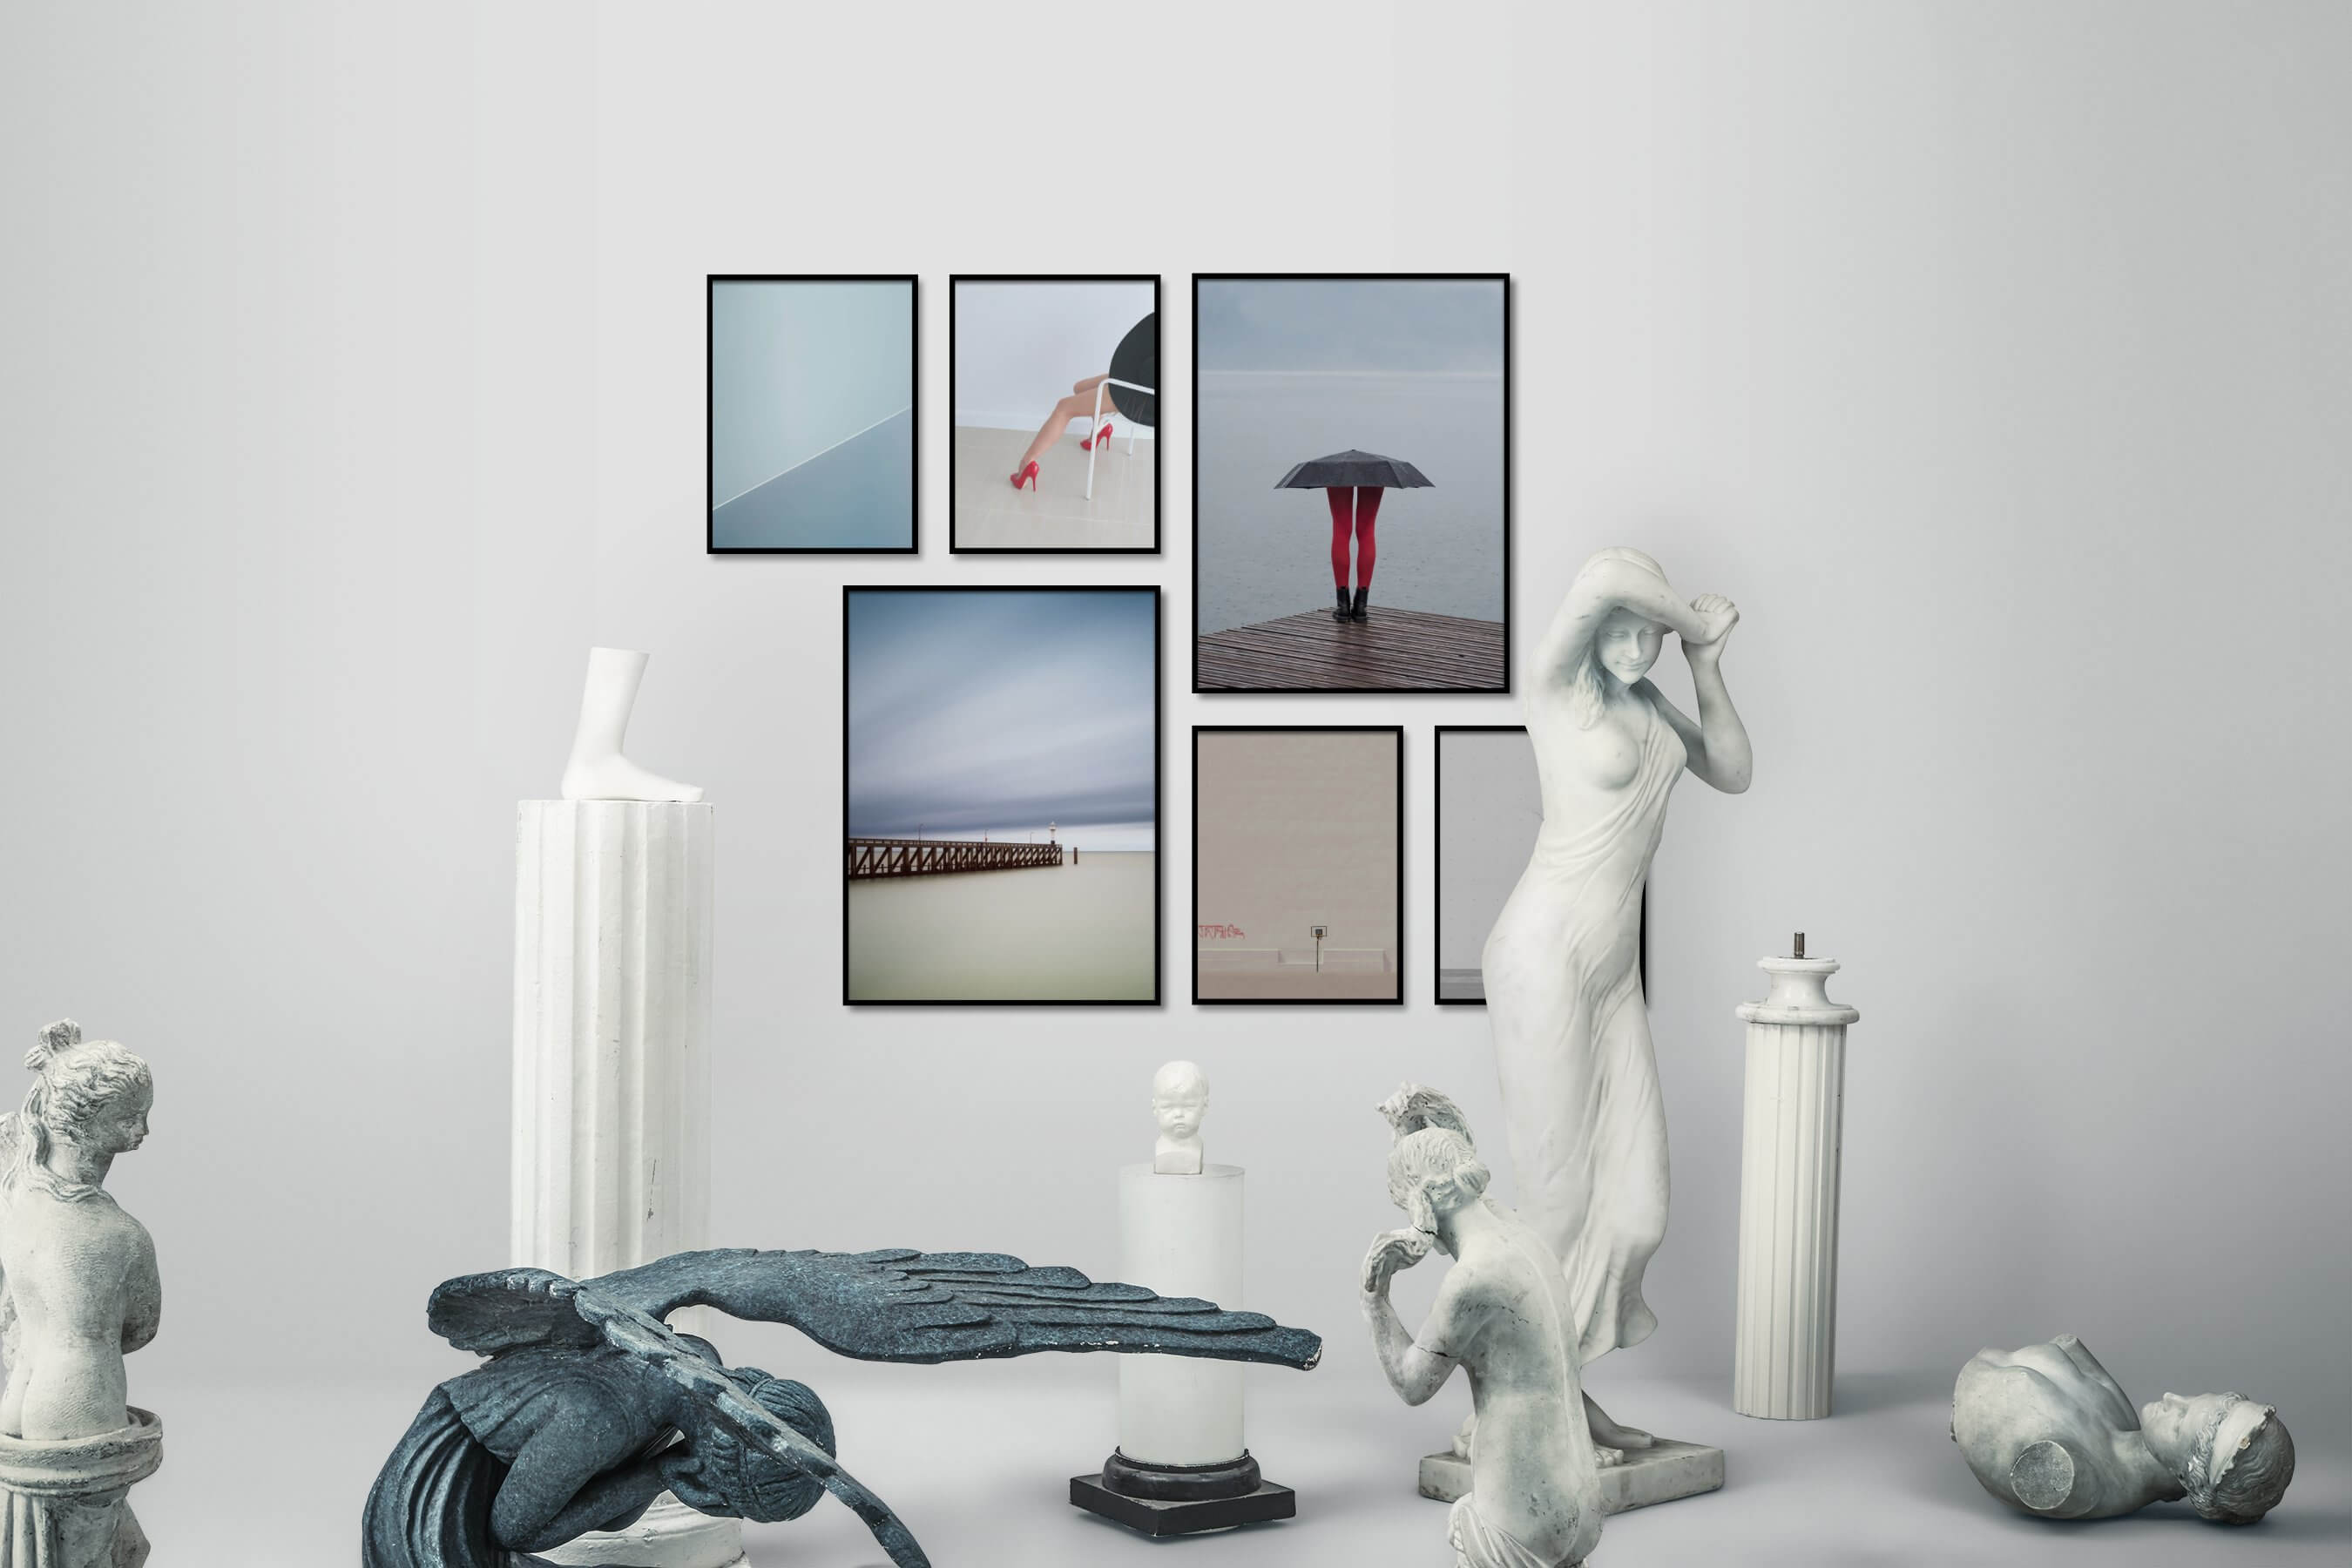 Gallery wall idea with six framed pictures arranged on a wall depicting For the Minimalist, Fashion & Beauty, Mindfulness, Artsy, For the Moderate, City Life, and Black & White